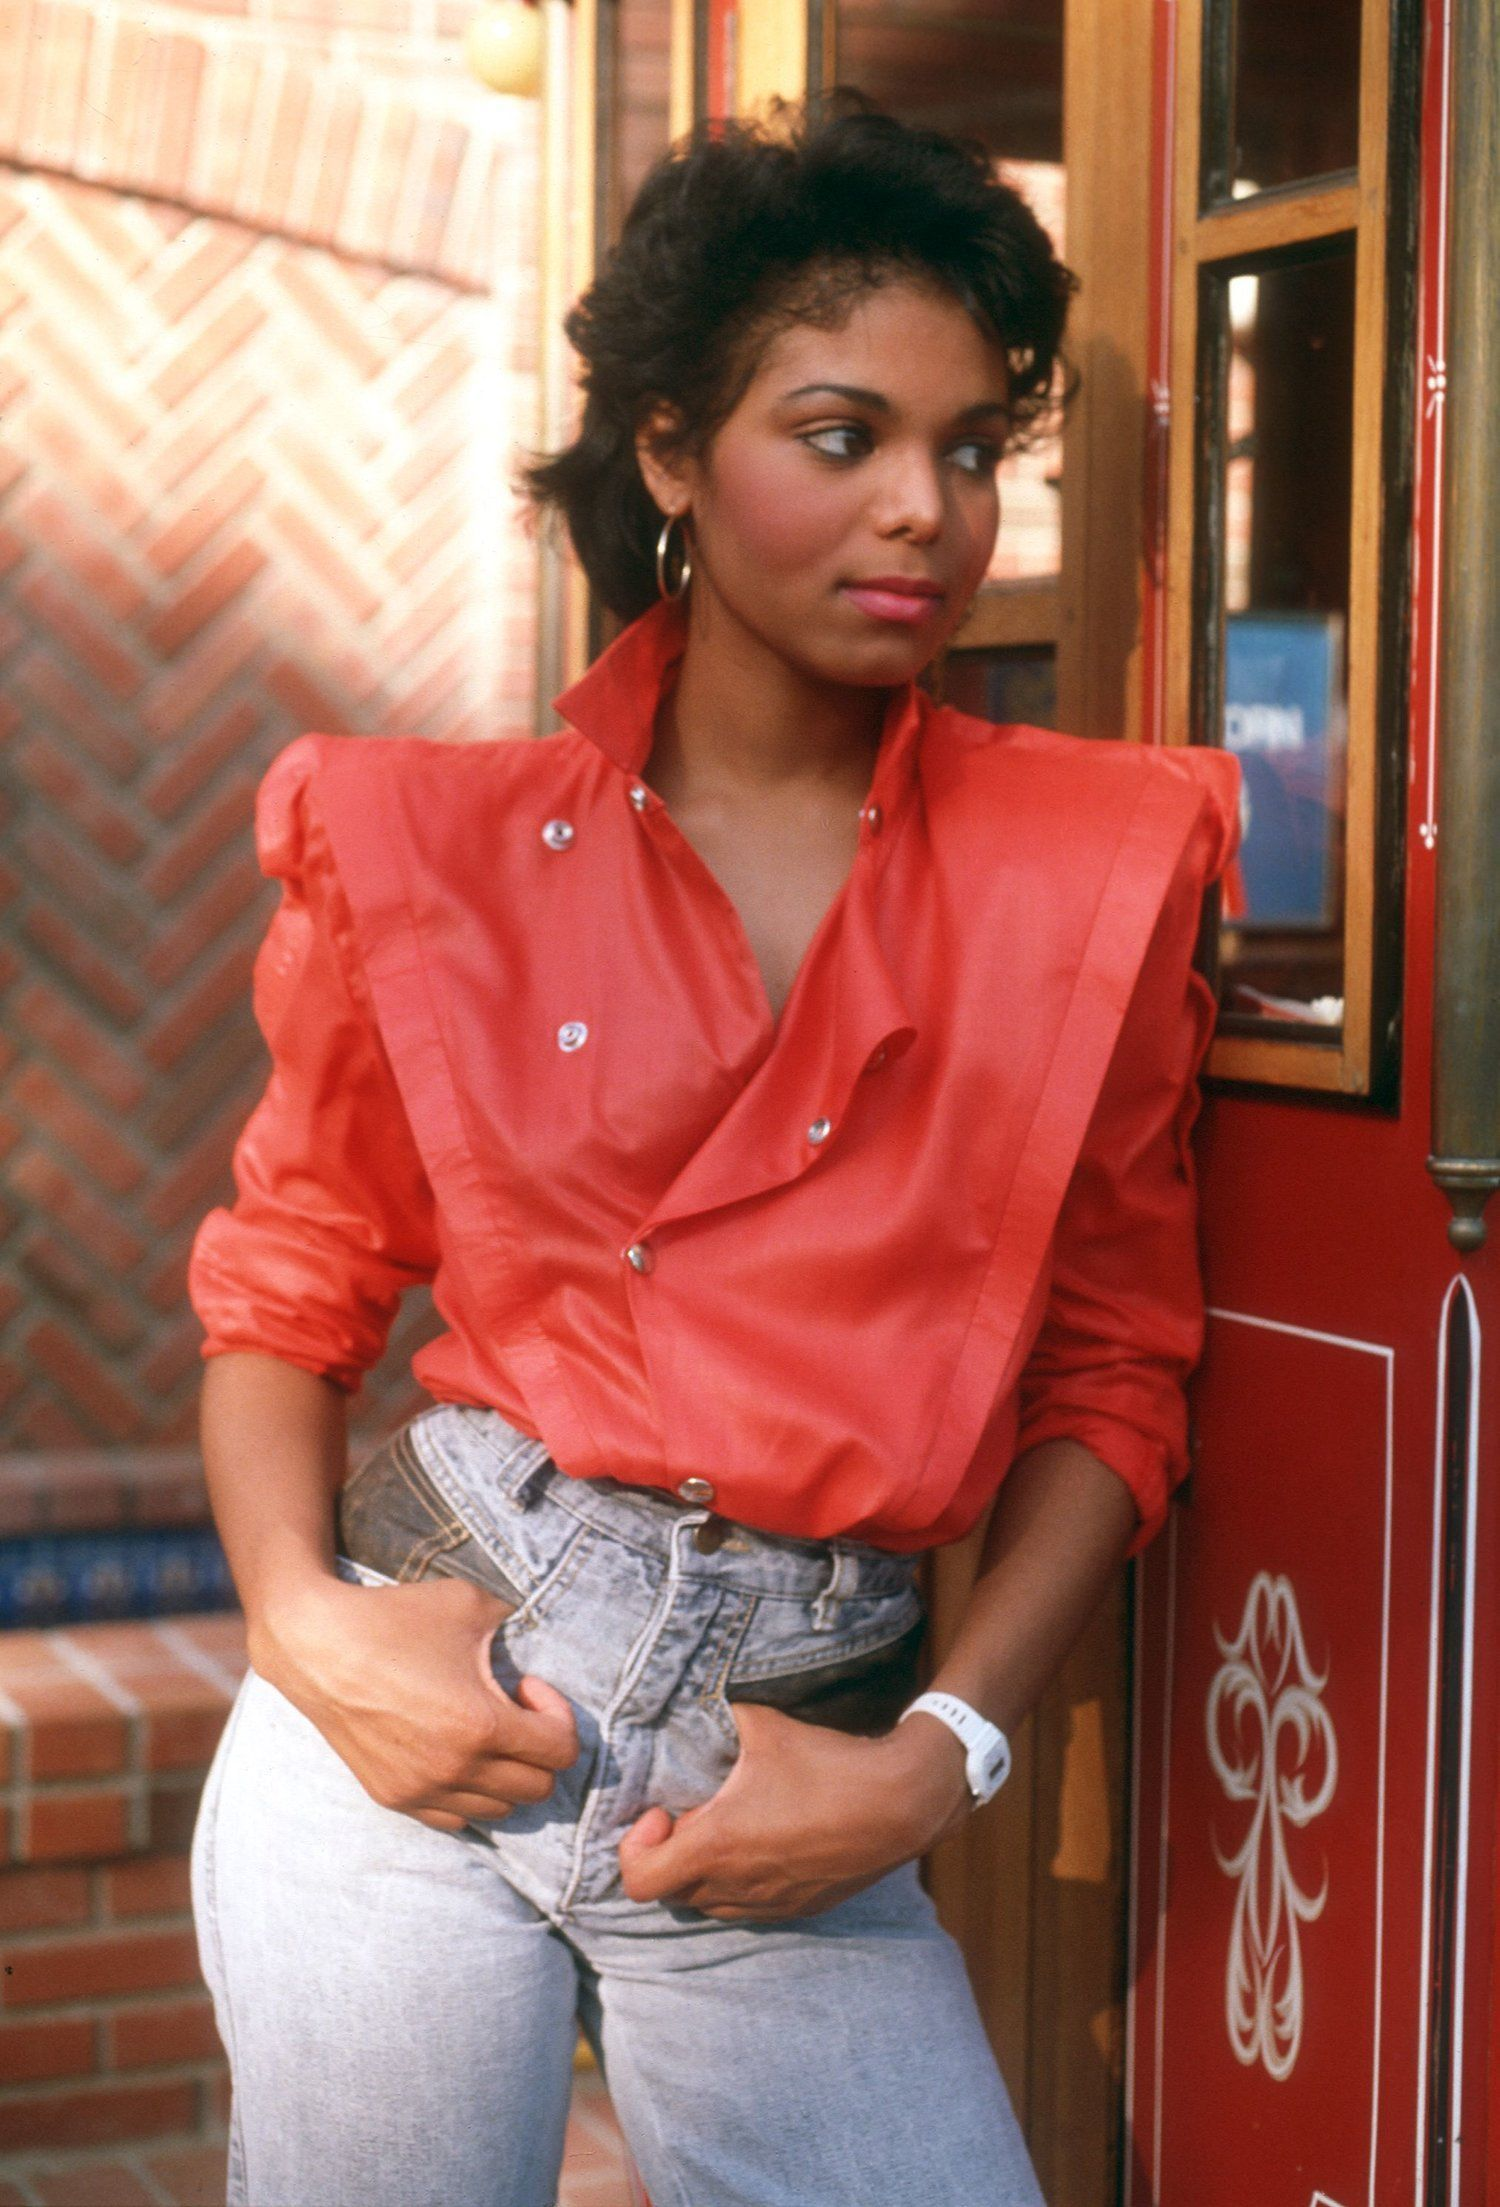 11 Affordable 80s Jeans Your Fave 80s Style Icons Would Totally Wear #throwbackoutfits 80s fashion, 80s aesthetic, 80s party outfit, 80s fashion outfits, 80s nostalgia, 80s style, 80s outfits, 80s clothes, 1980s, 80s costume, denim, denim jeans, denim outfit, throwback outfits, retro fashion, retro aesthetic, retro clothes, retro style, janet jackson 80s, janet jackson style, janet jackson outfits, janet jackson style #janetjackson #throwbackoutfits